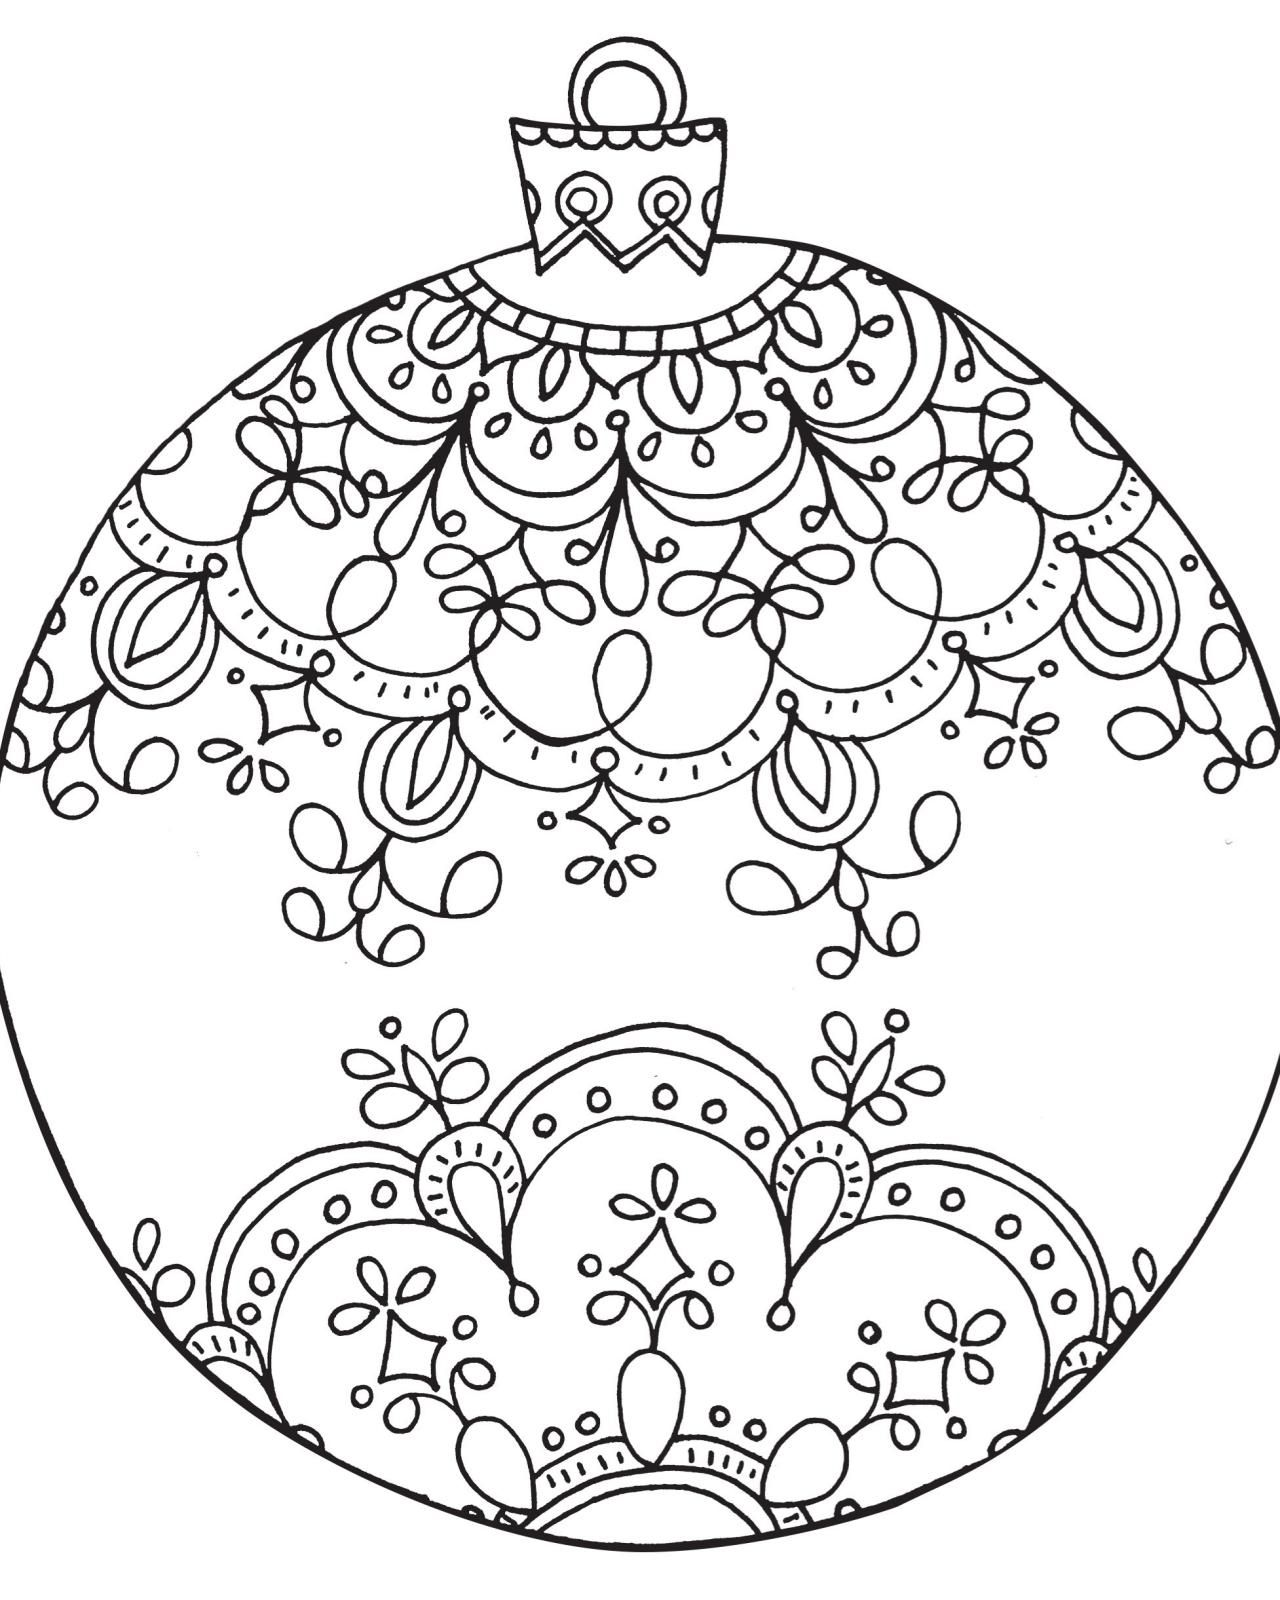 Pages to color for adults - Free Printable Coloring Pages For Adults